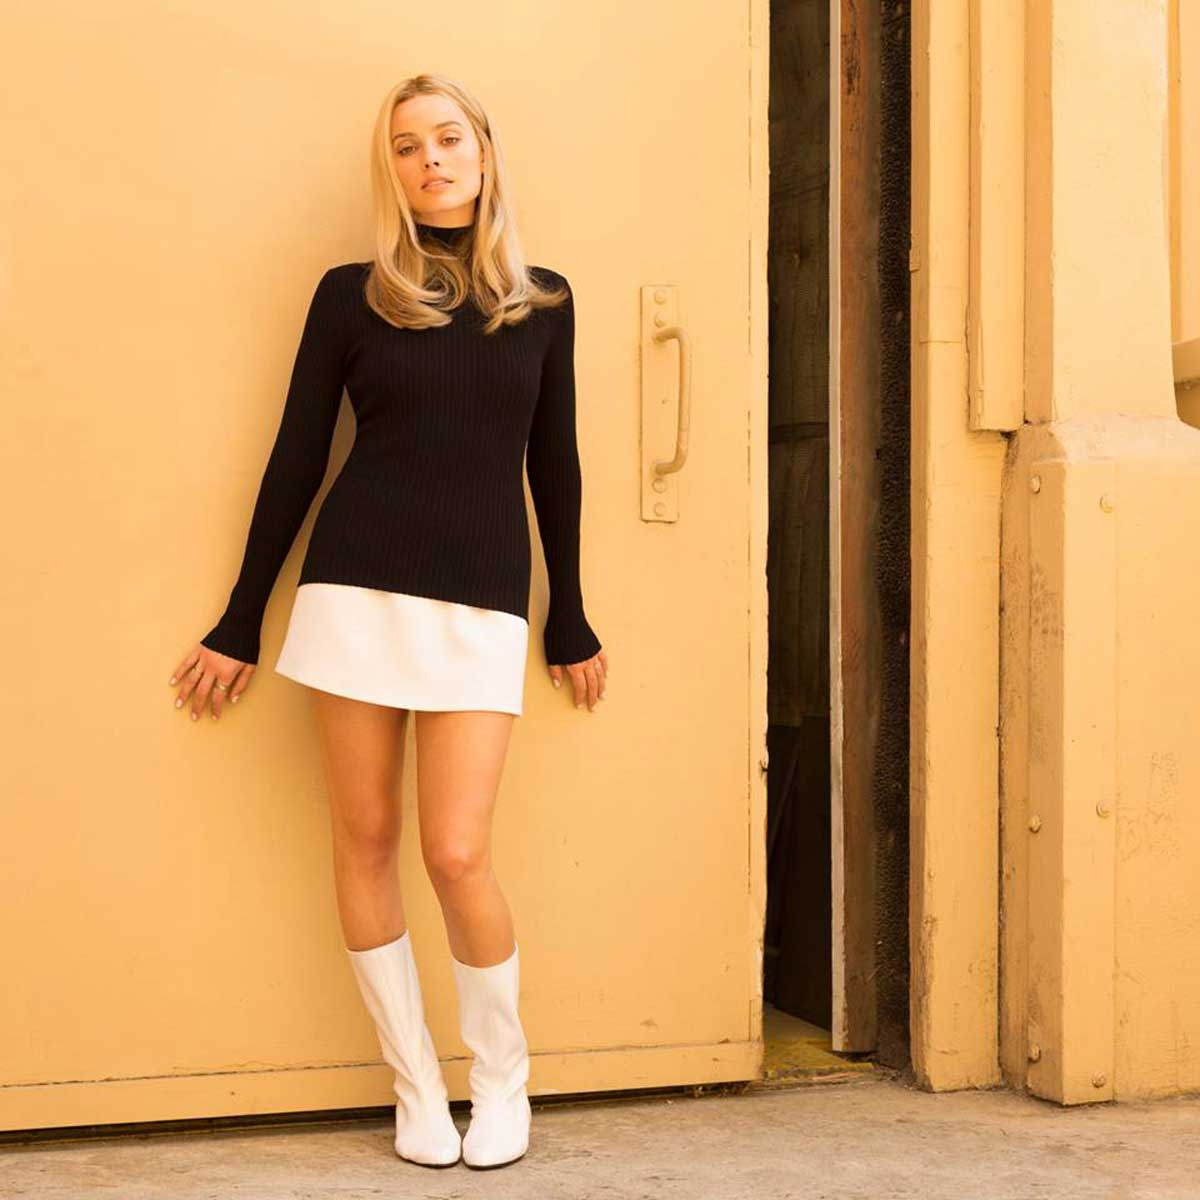 Margot Robbie for Once Upon A Time In Hollywood